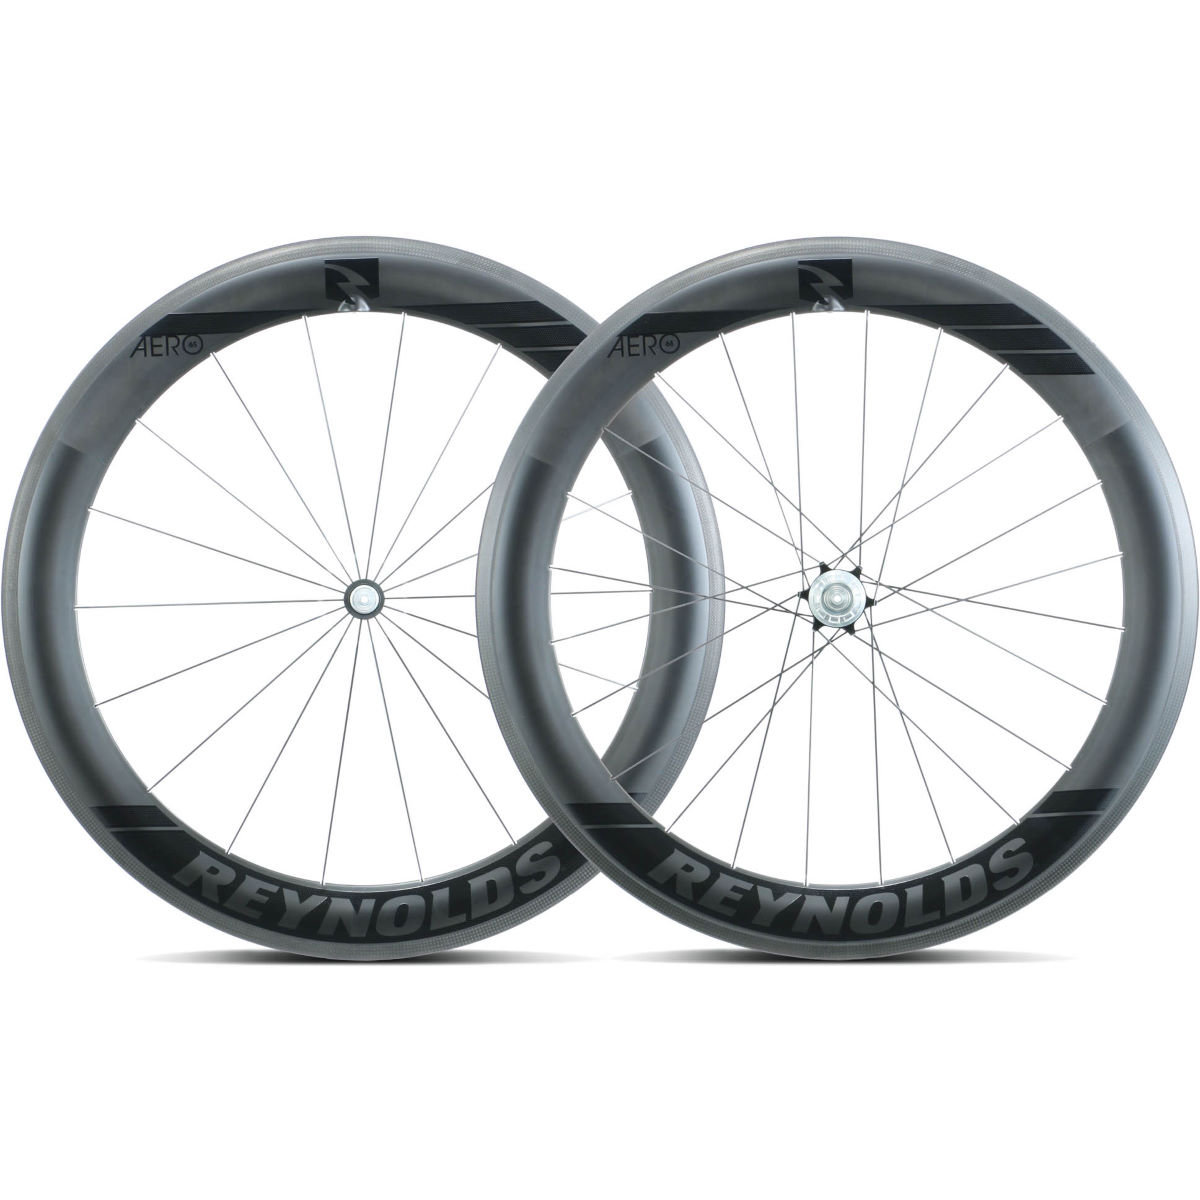 Reynolds Reynolds Aero 65 Black Label Carbon Road Wheelset   Wheel Sets